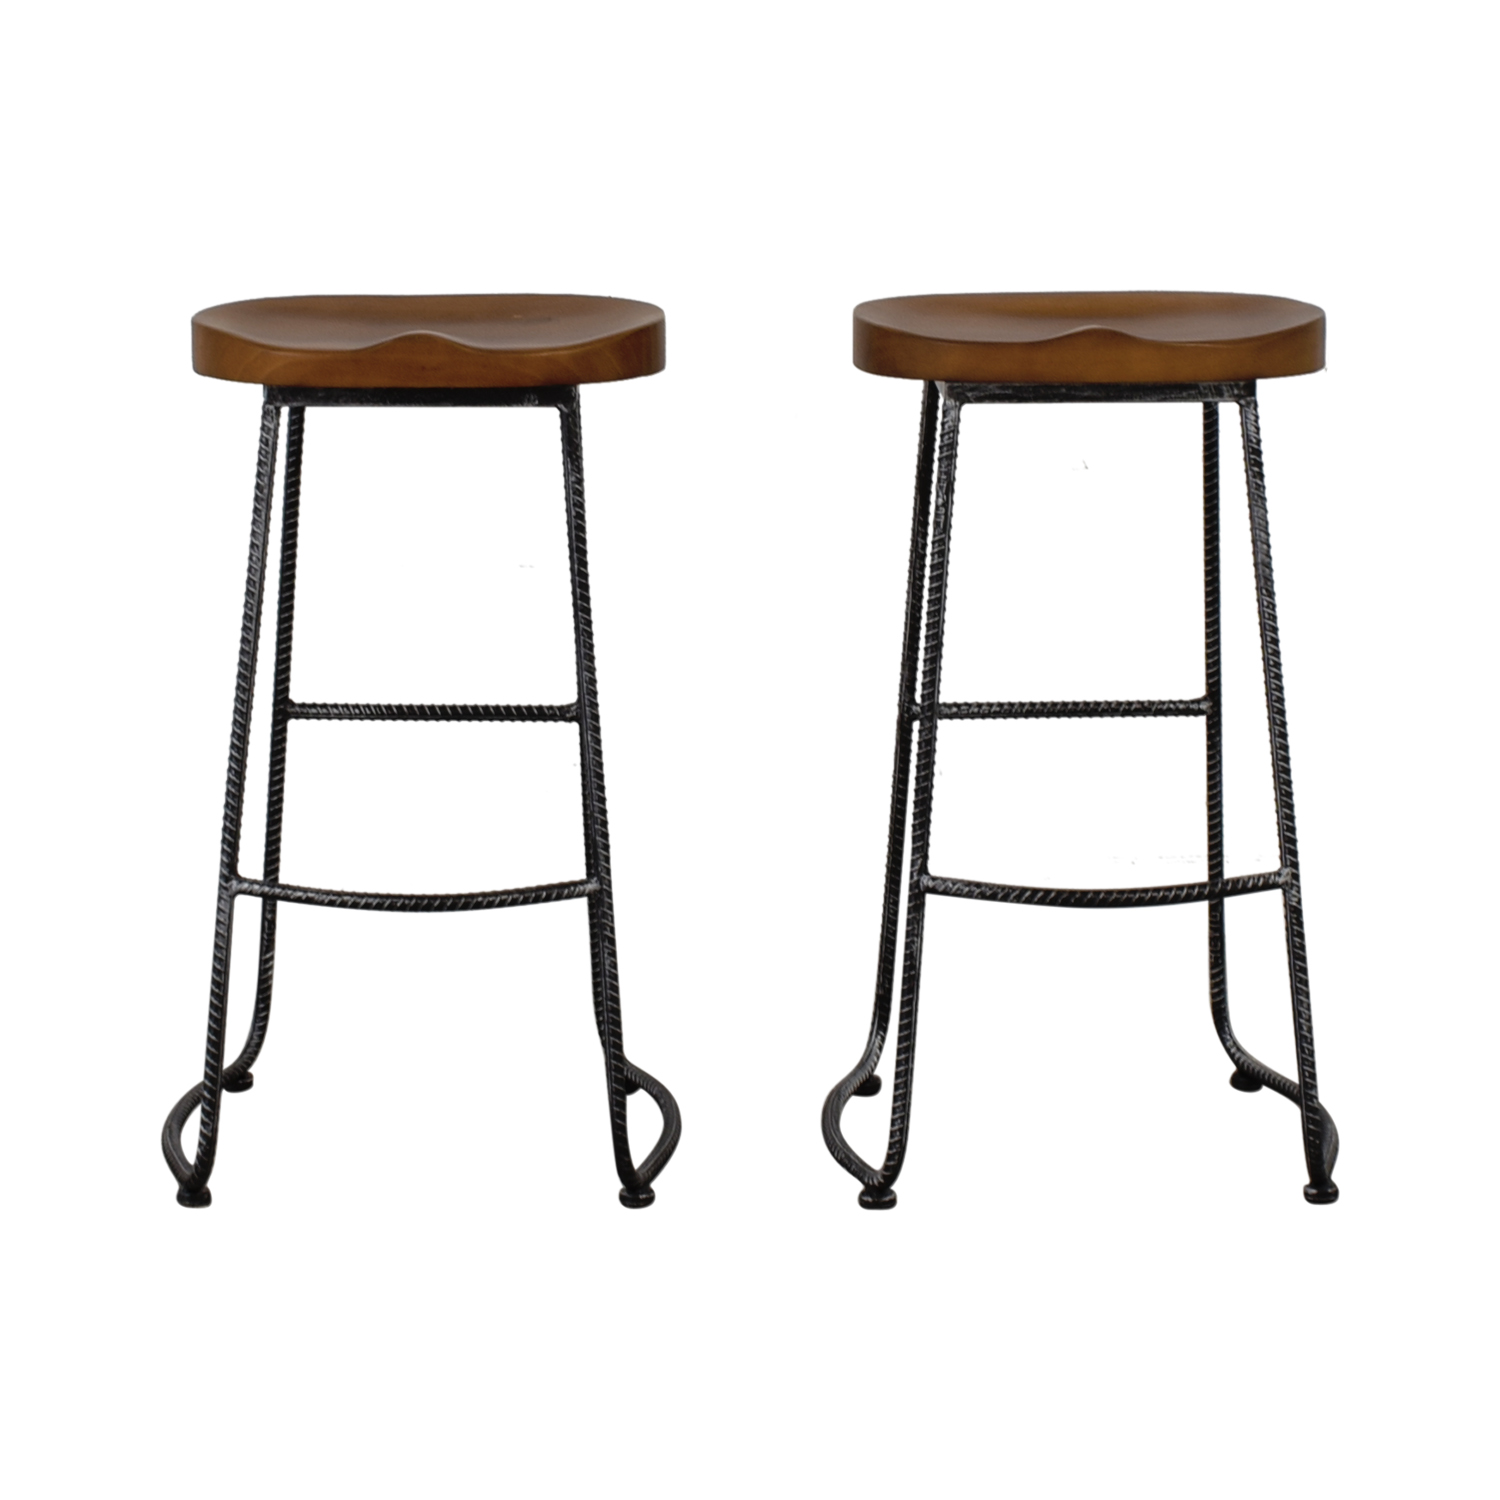 Wayfair Wayfair Bar Stools nj